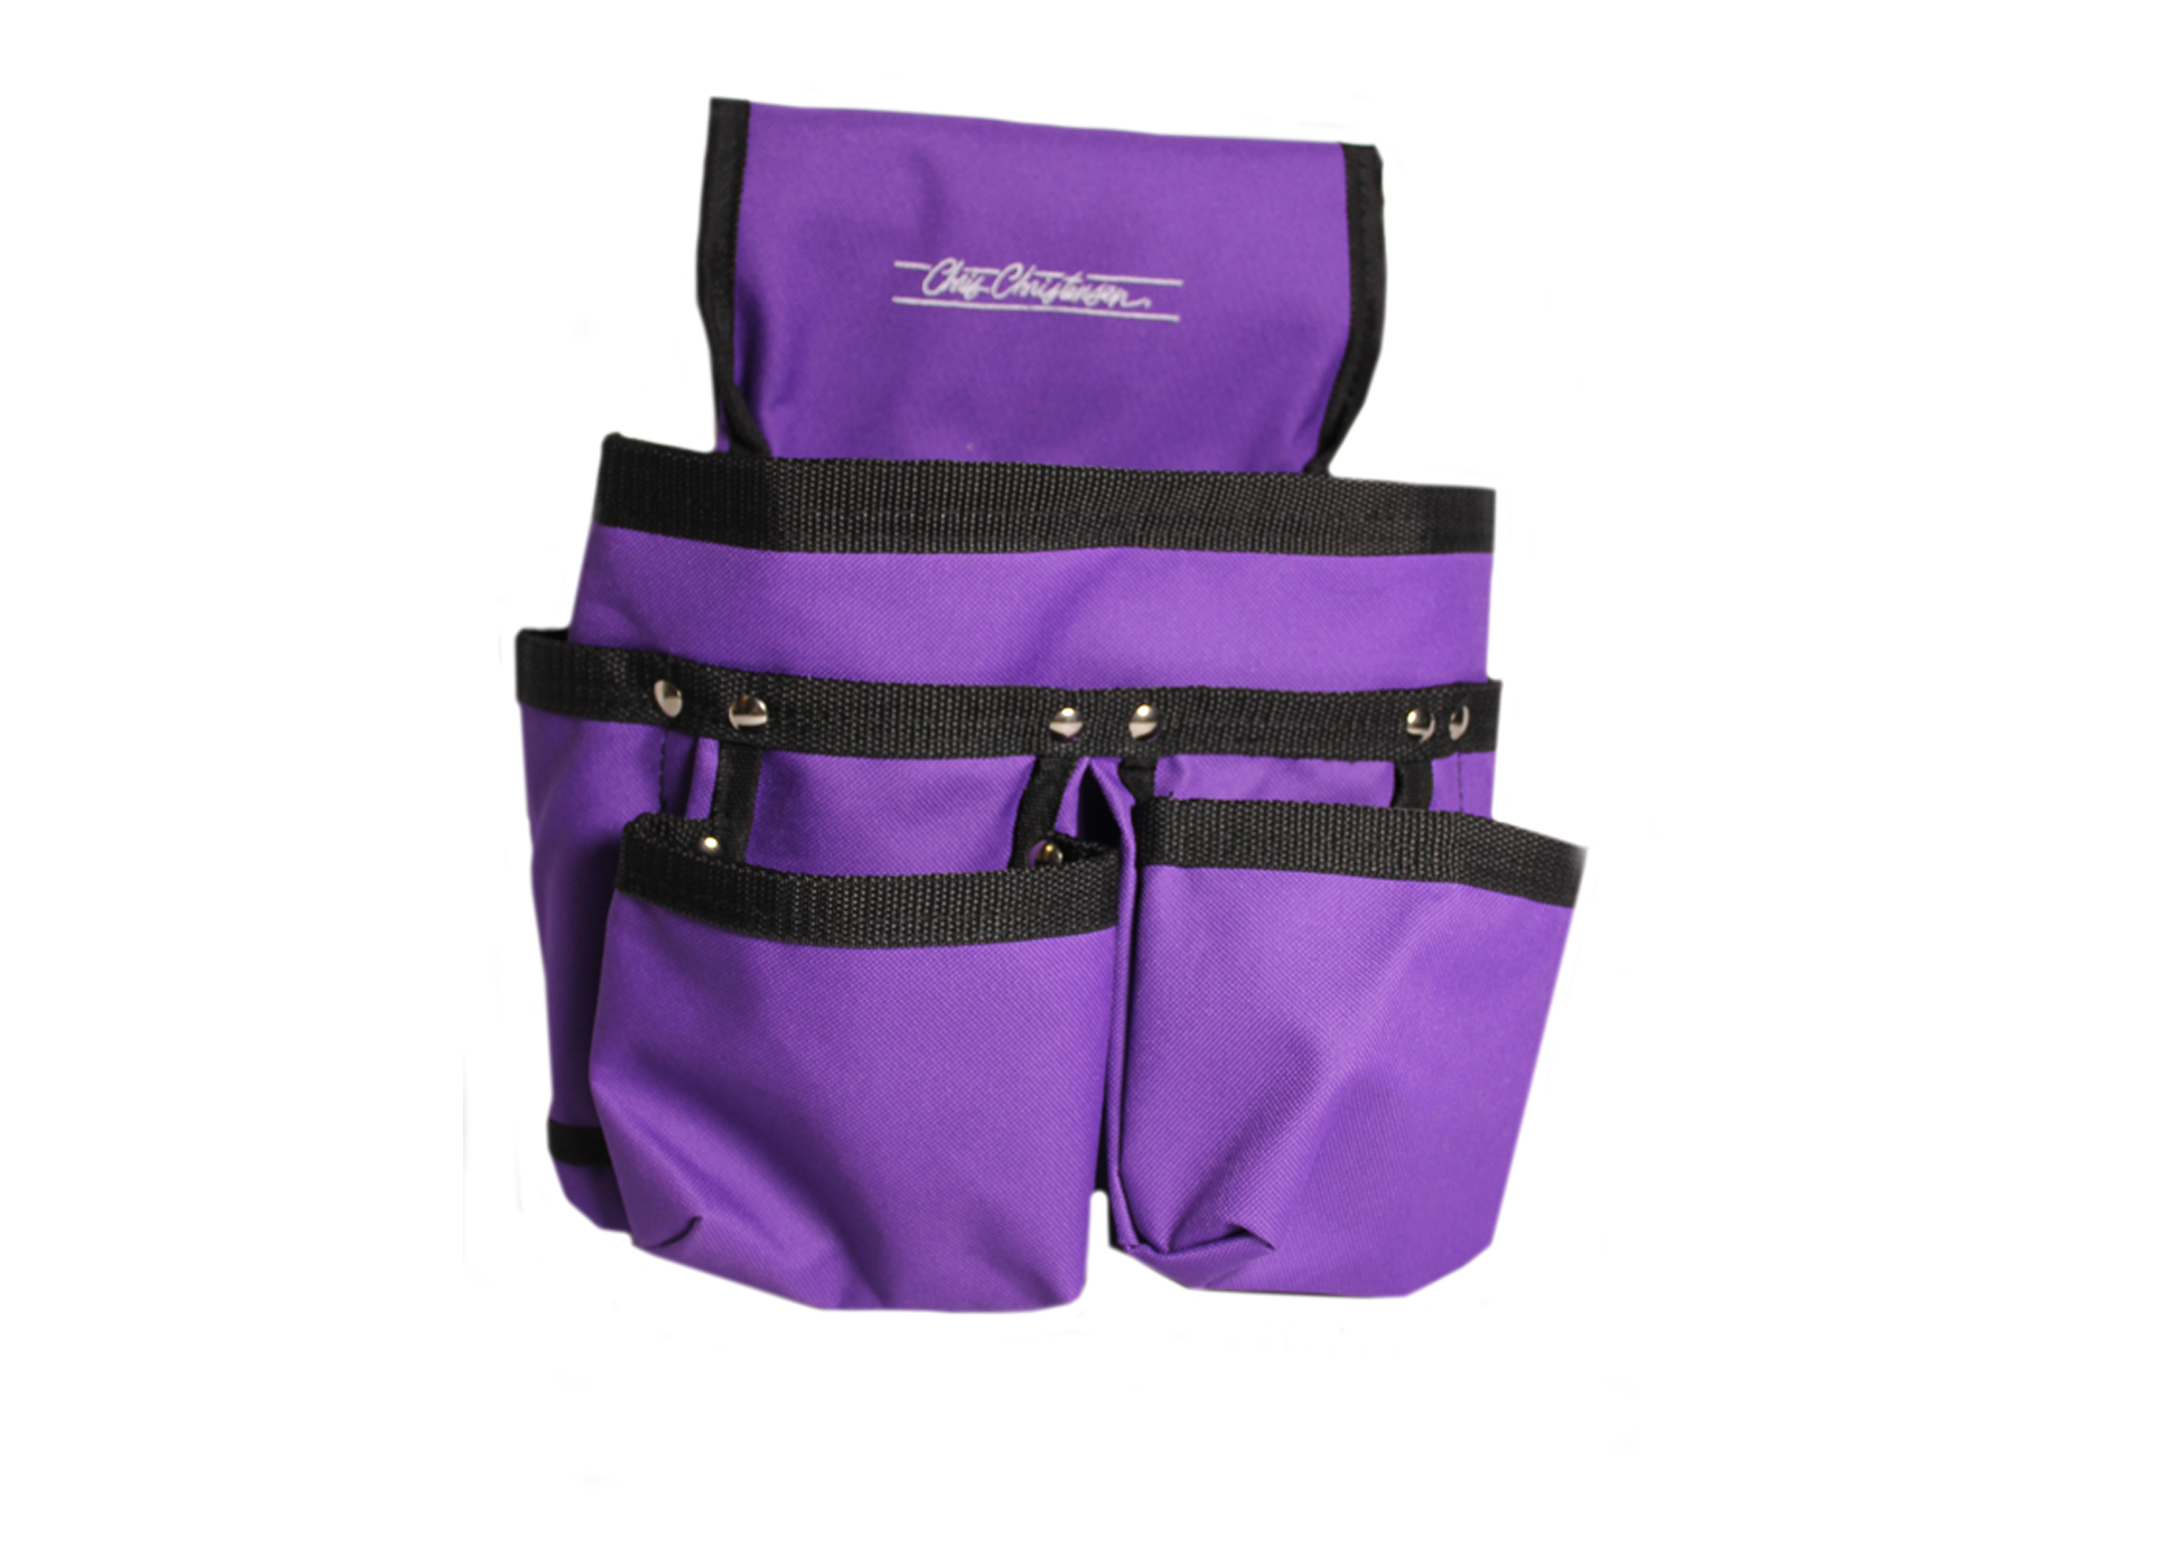 Chris Christensen Systems Large Grooming Tote Purple Travel Case